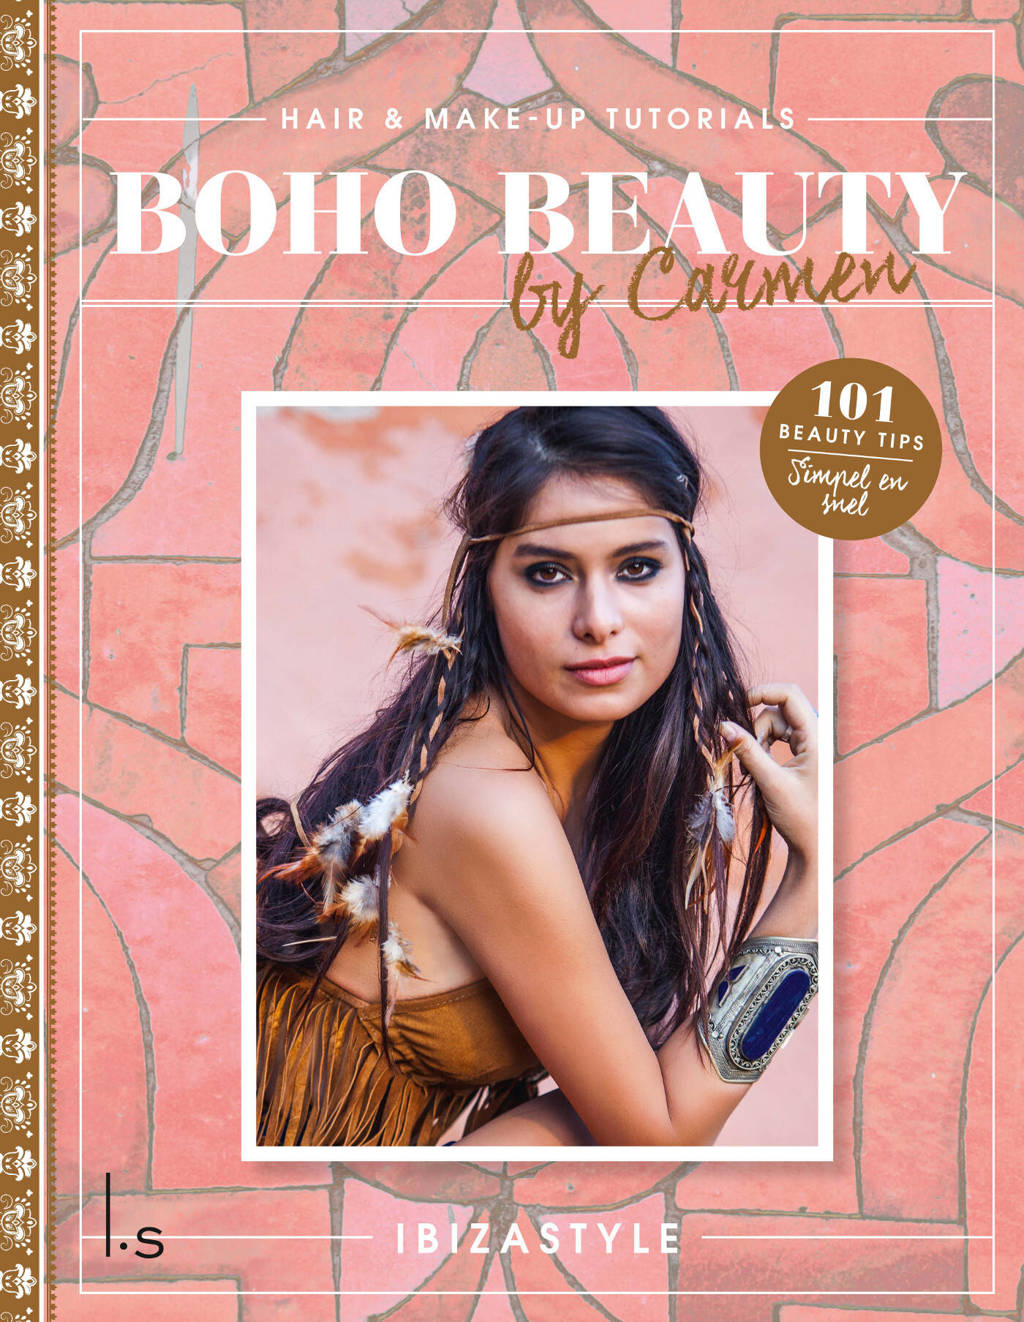 Boho beauty, make-up en haar - Carmen Zomers